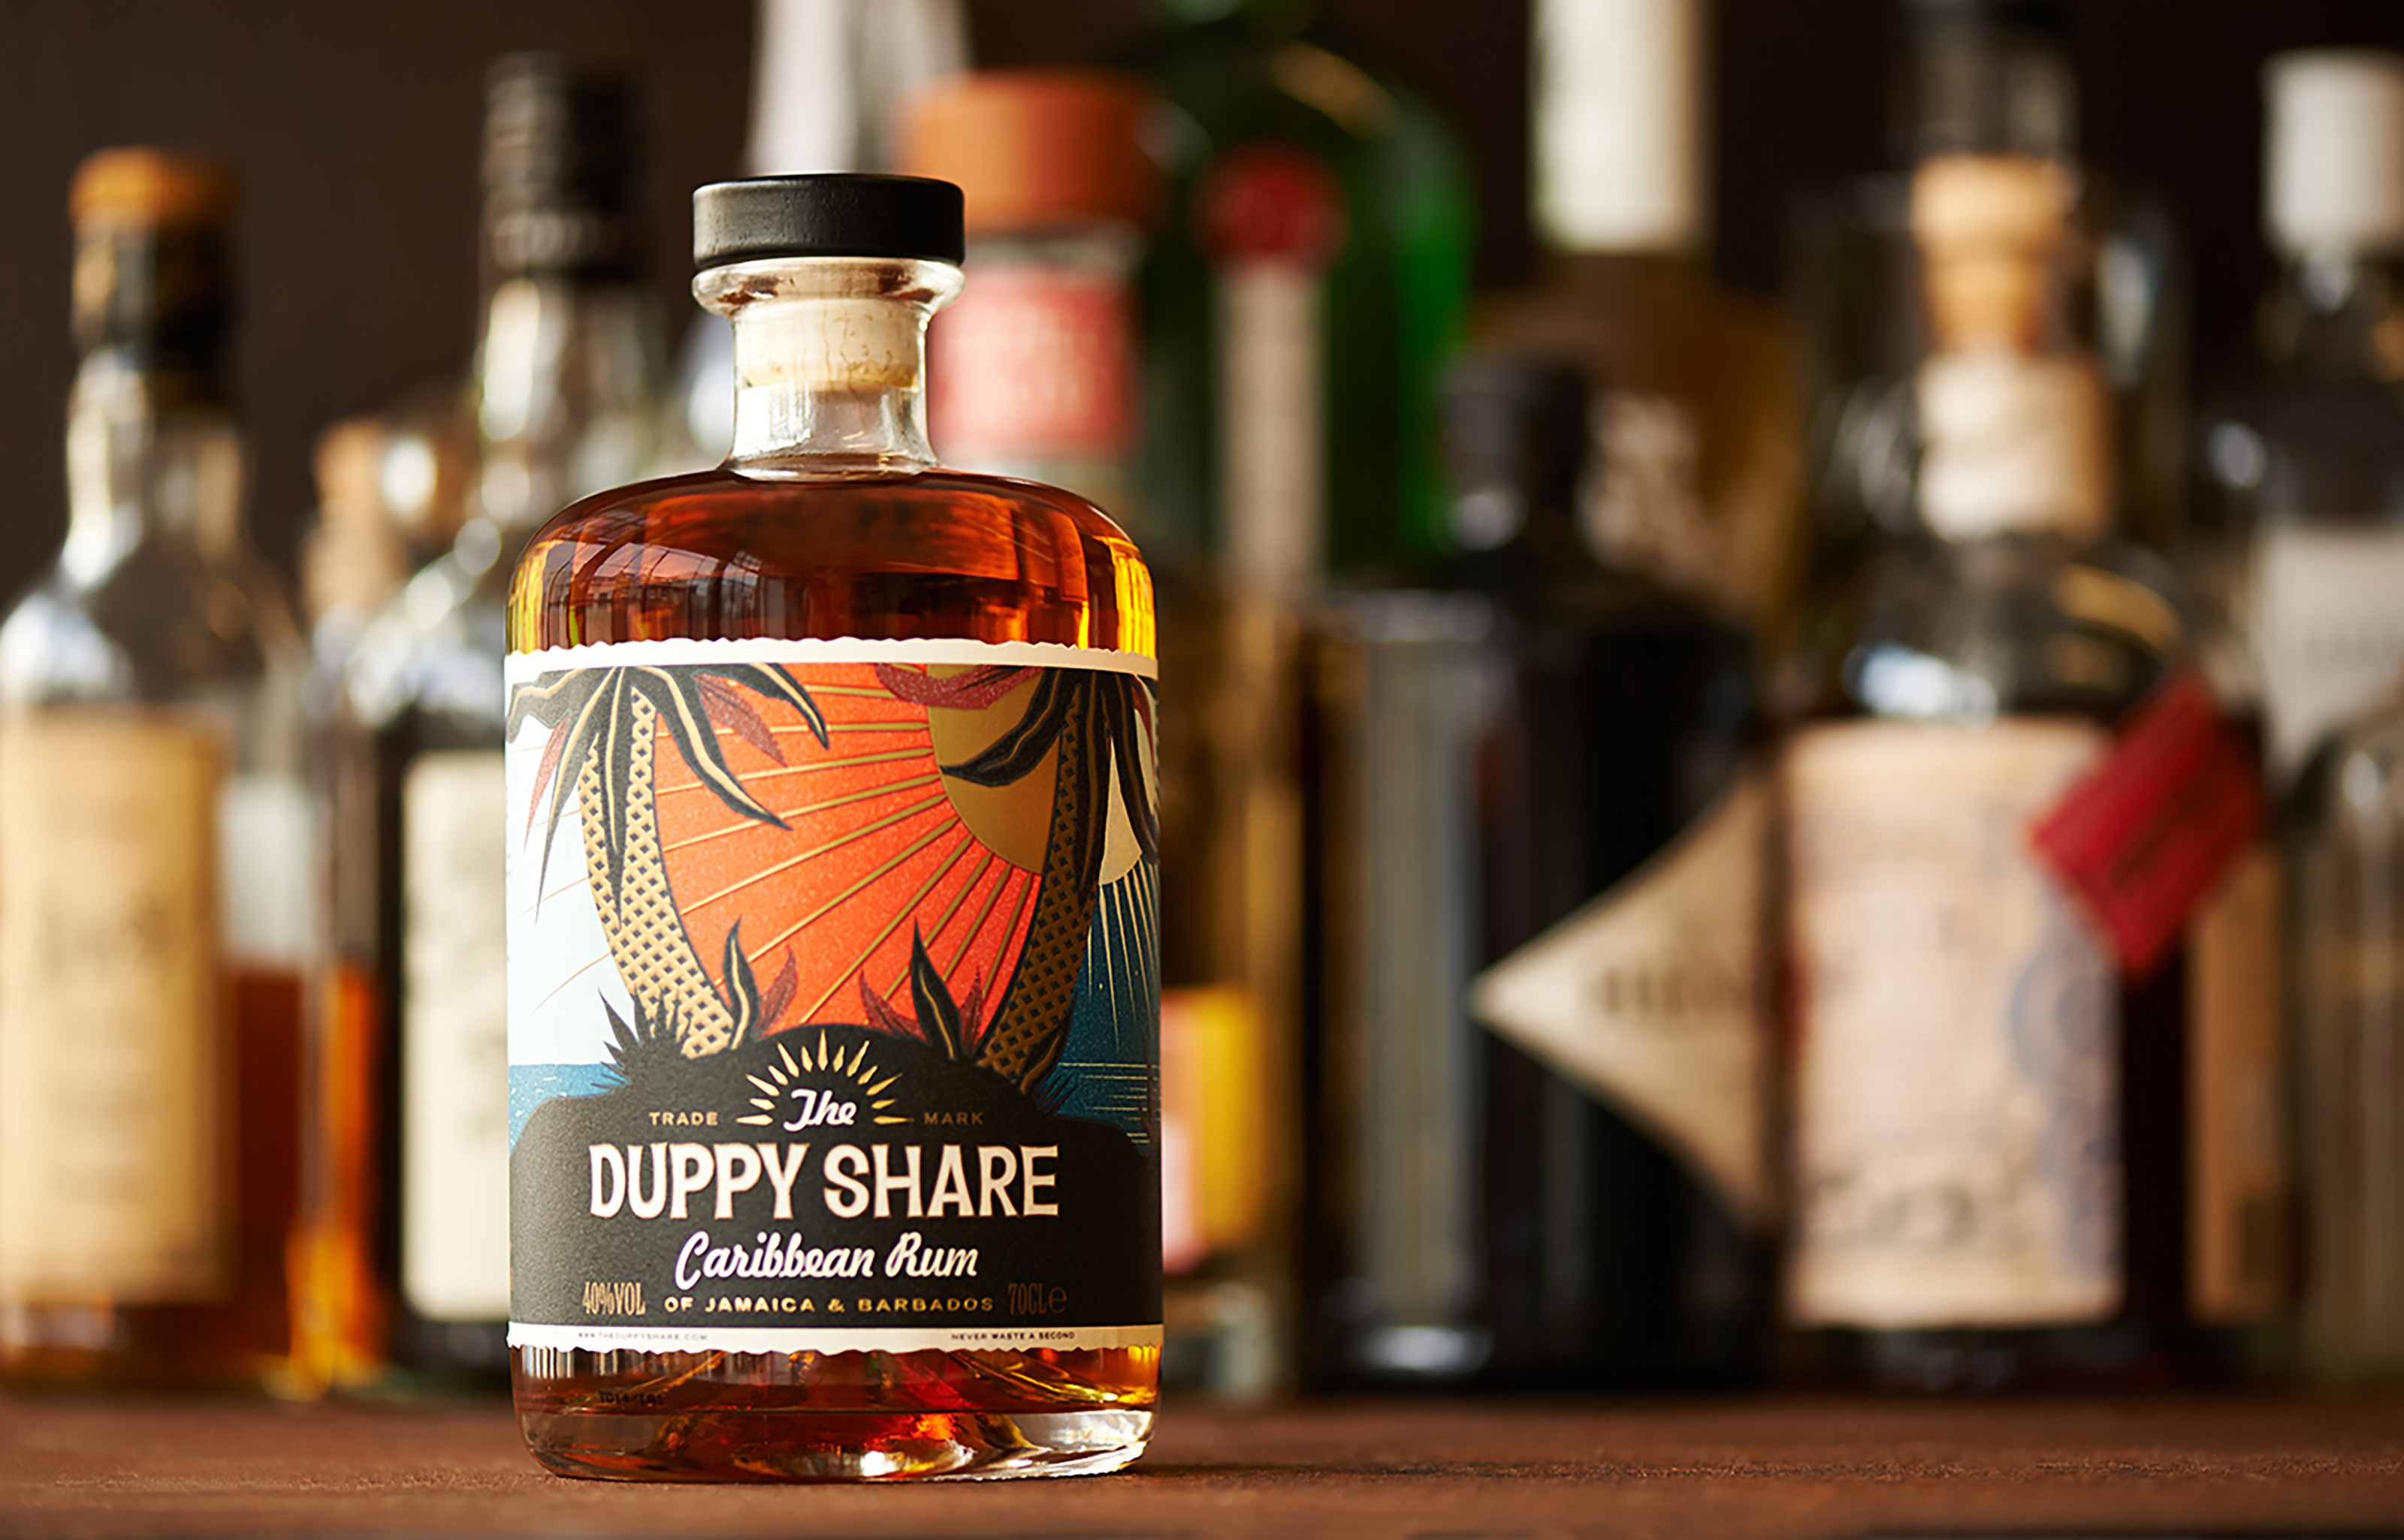 The Duppy Share Bar